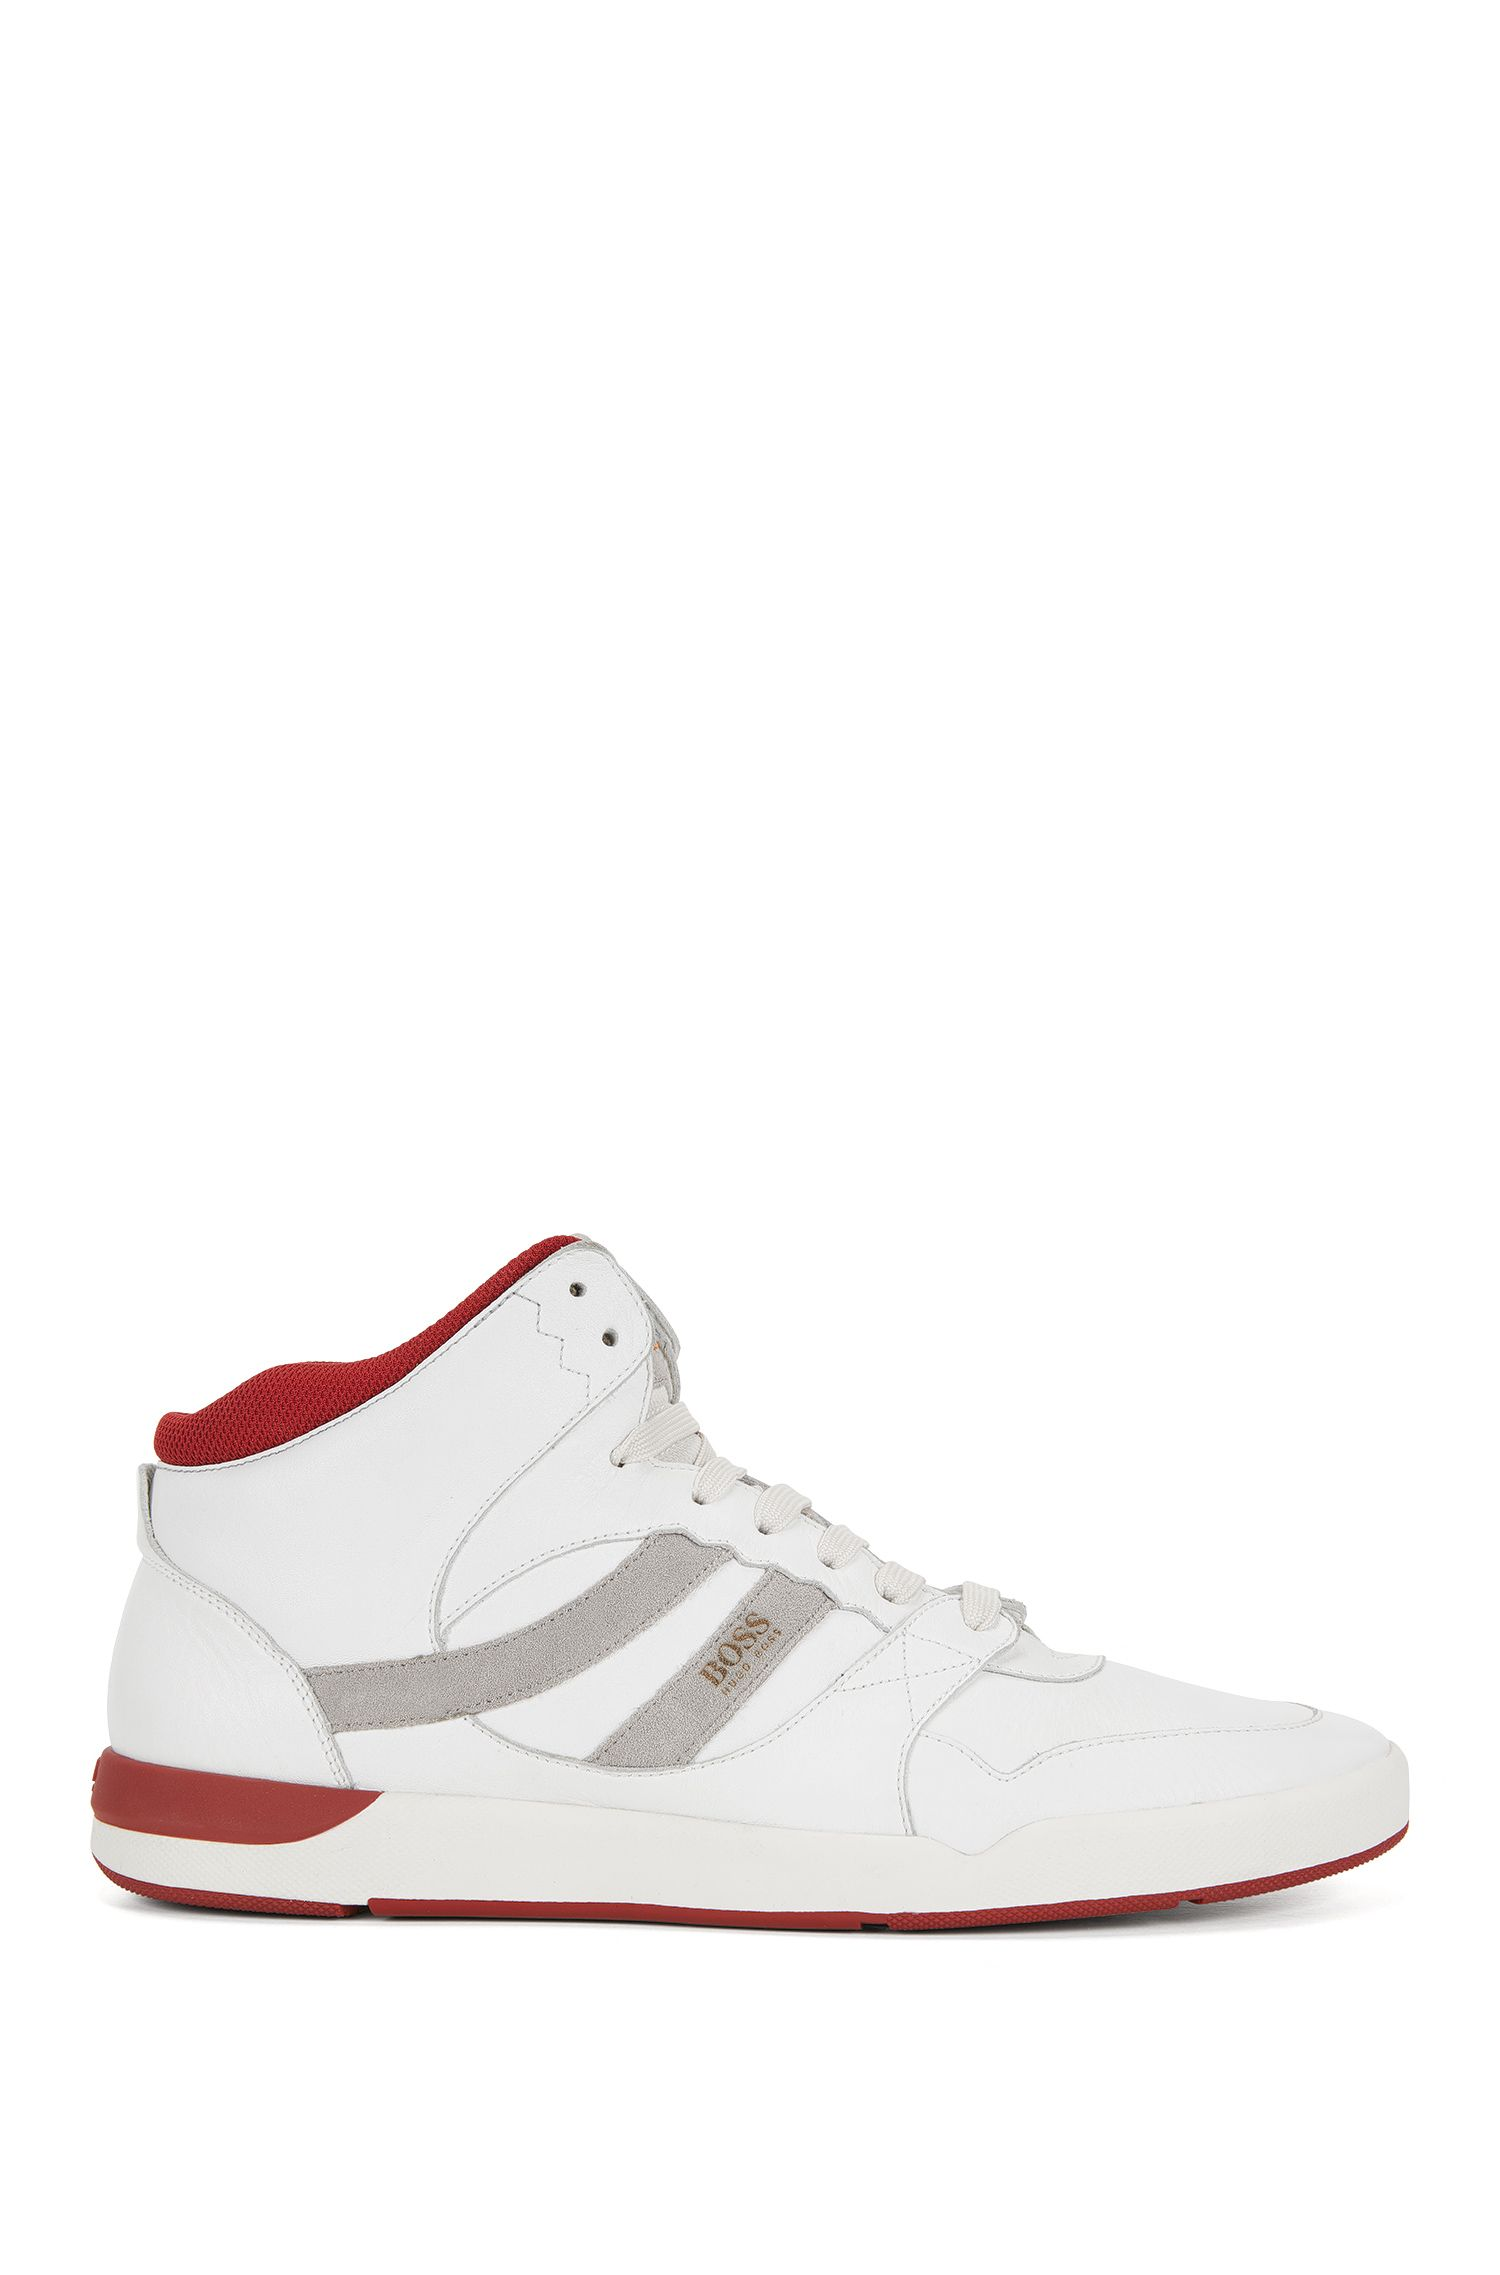 Sneakers high-top in pelle lavata